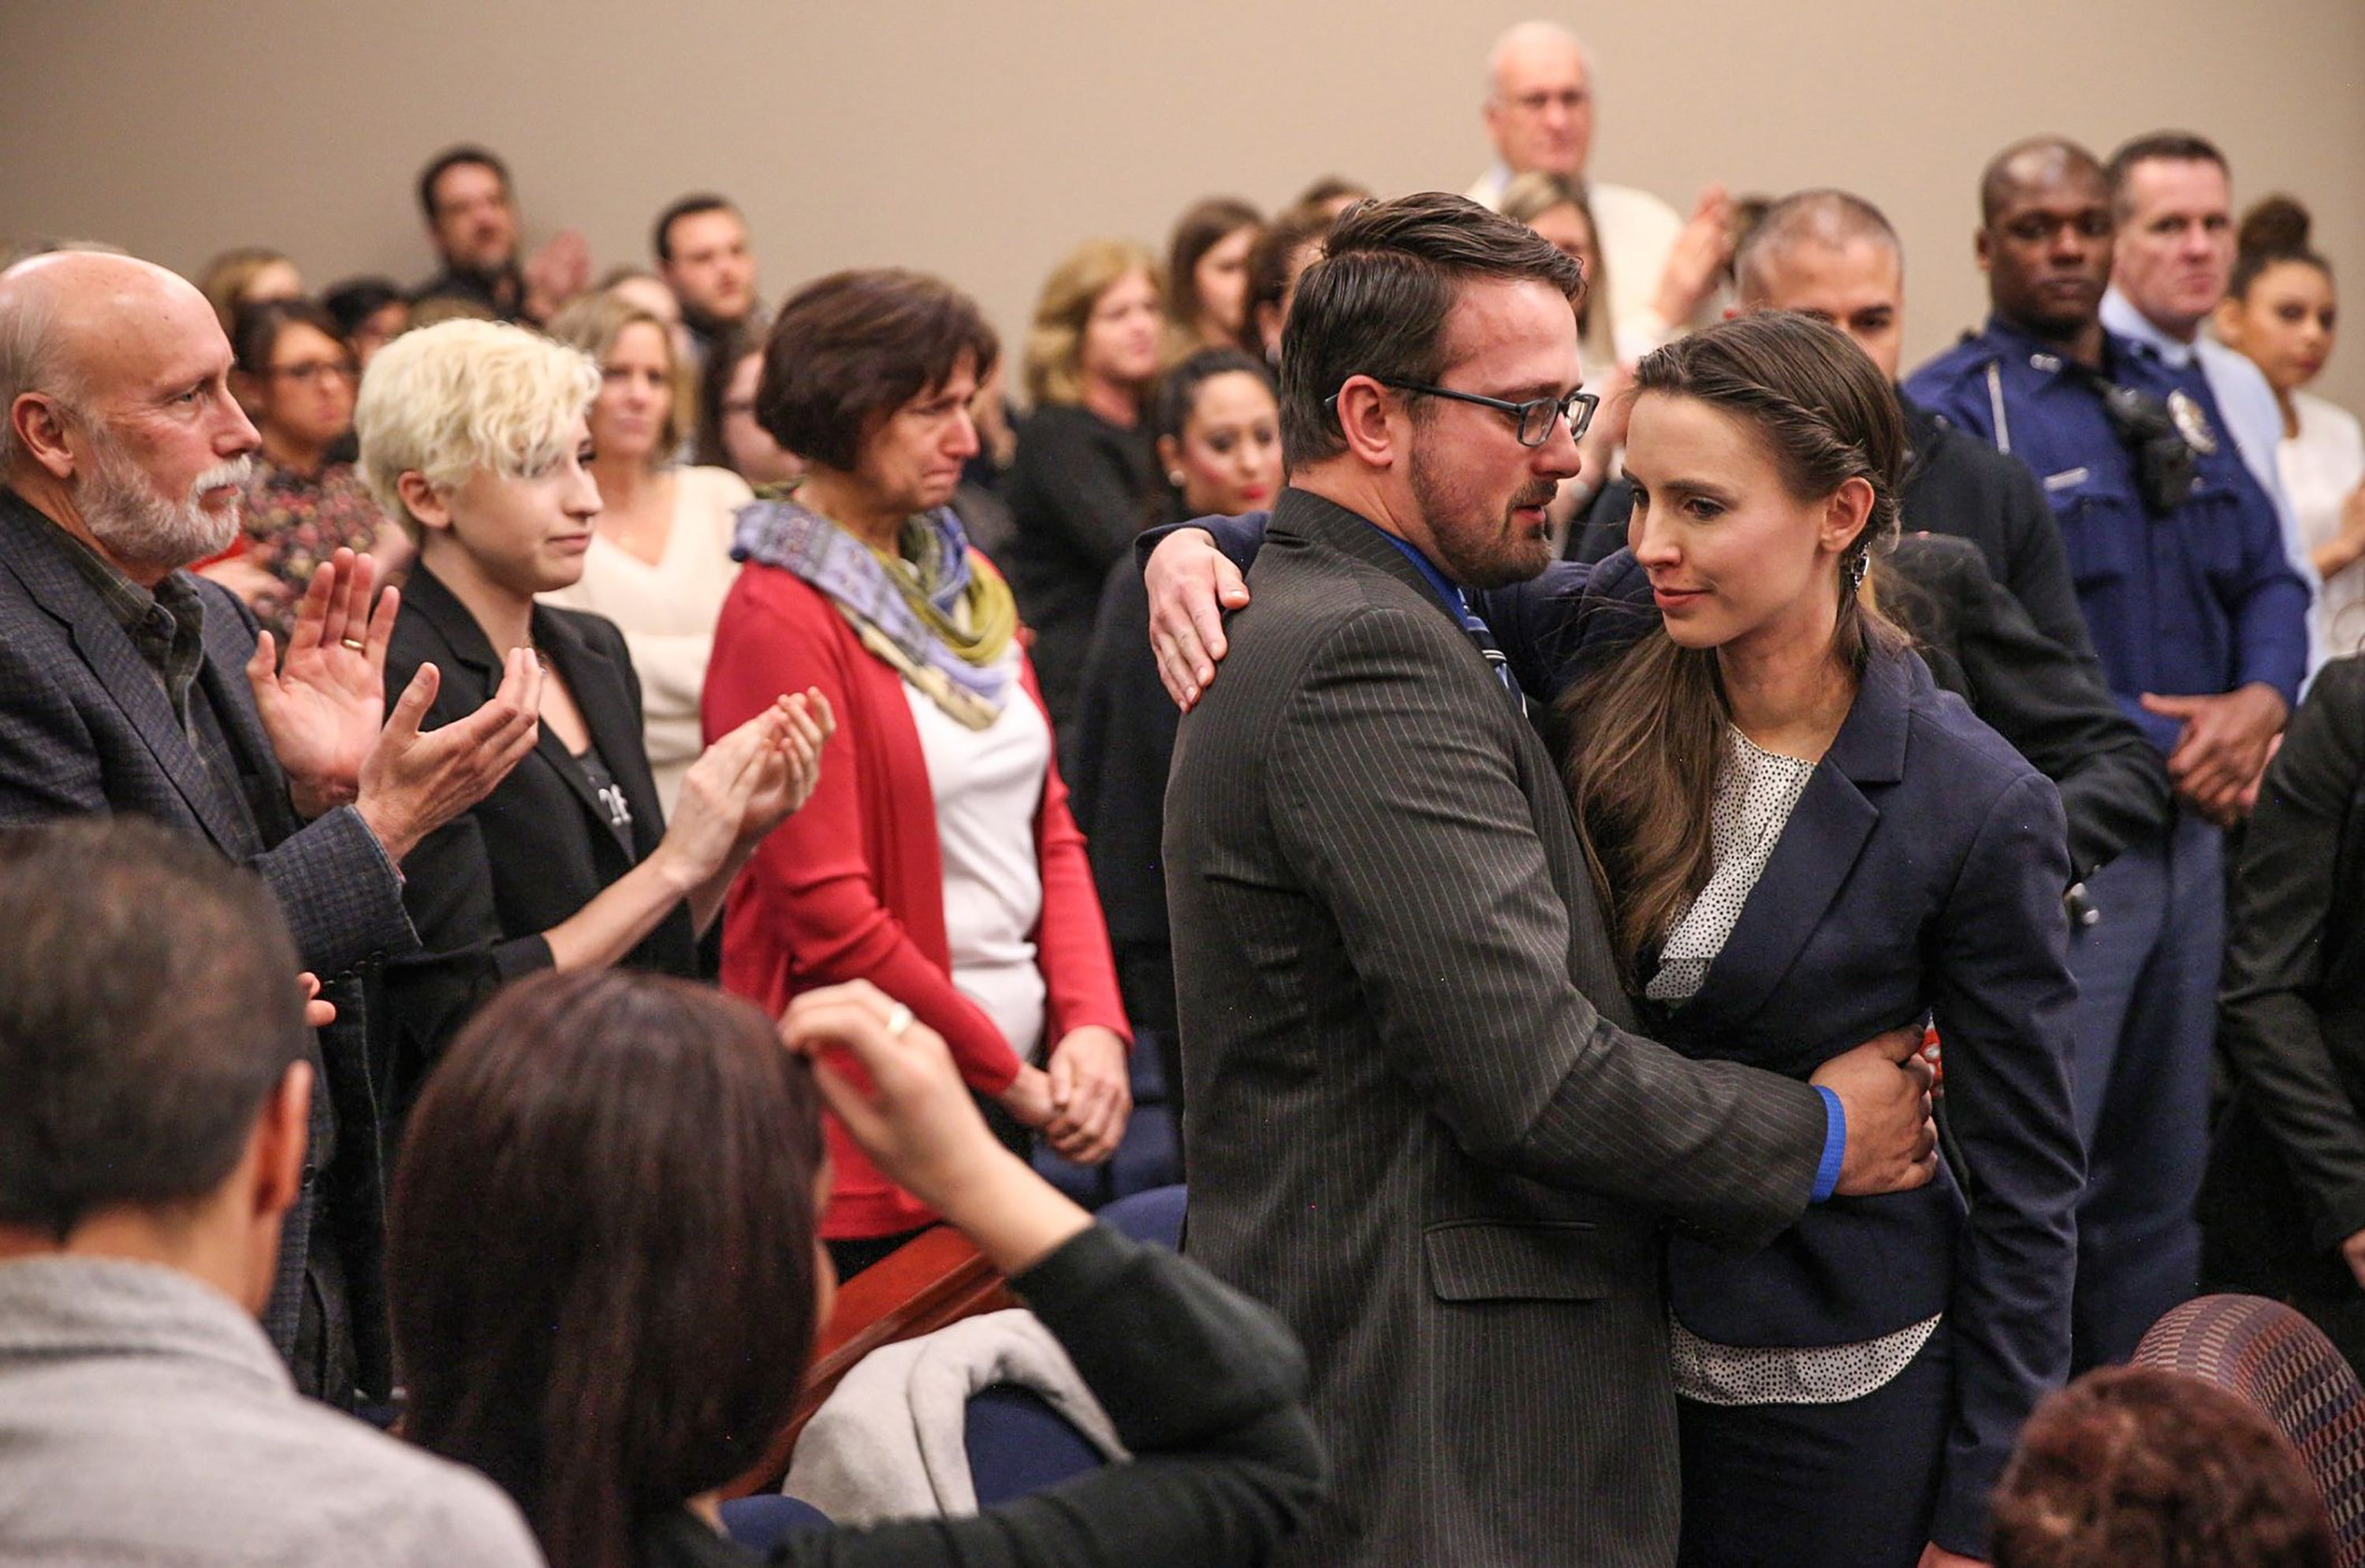 Rachael Denhollander's courage led army of Larry Nassar accusers